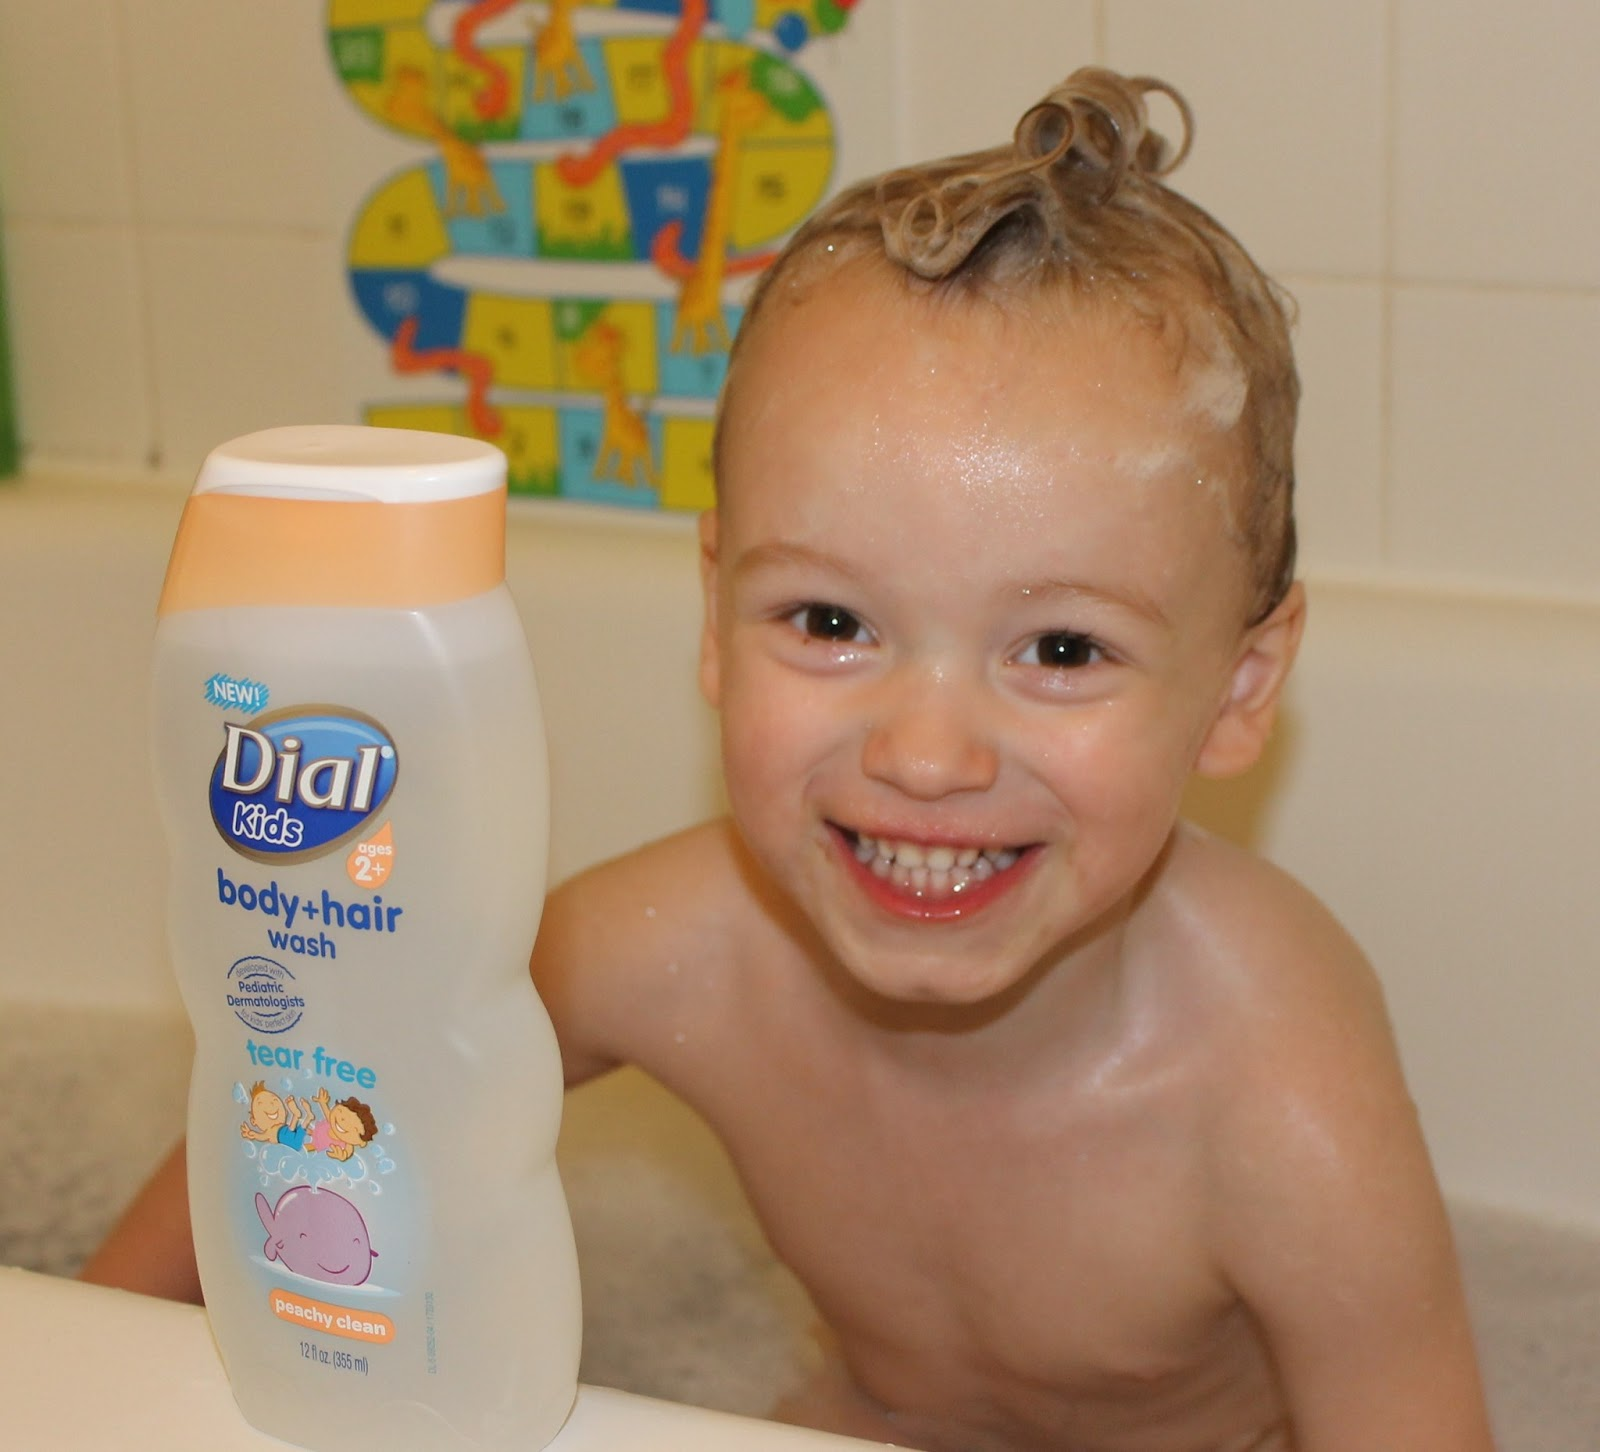 Dealy Os Product Reviews: Dial Kids Body + Hair Wash Review and Giveaway